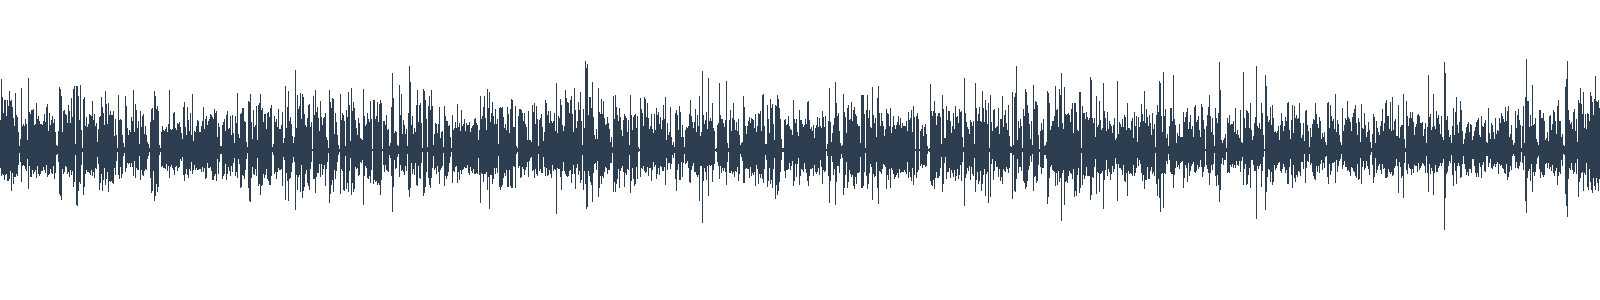 Už zasa ten Paddington waveform